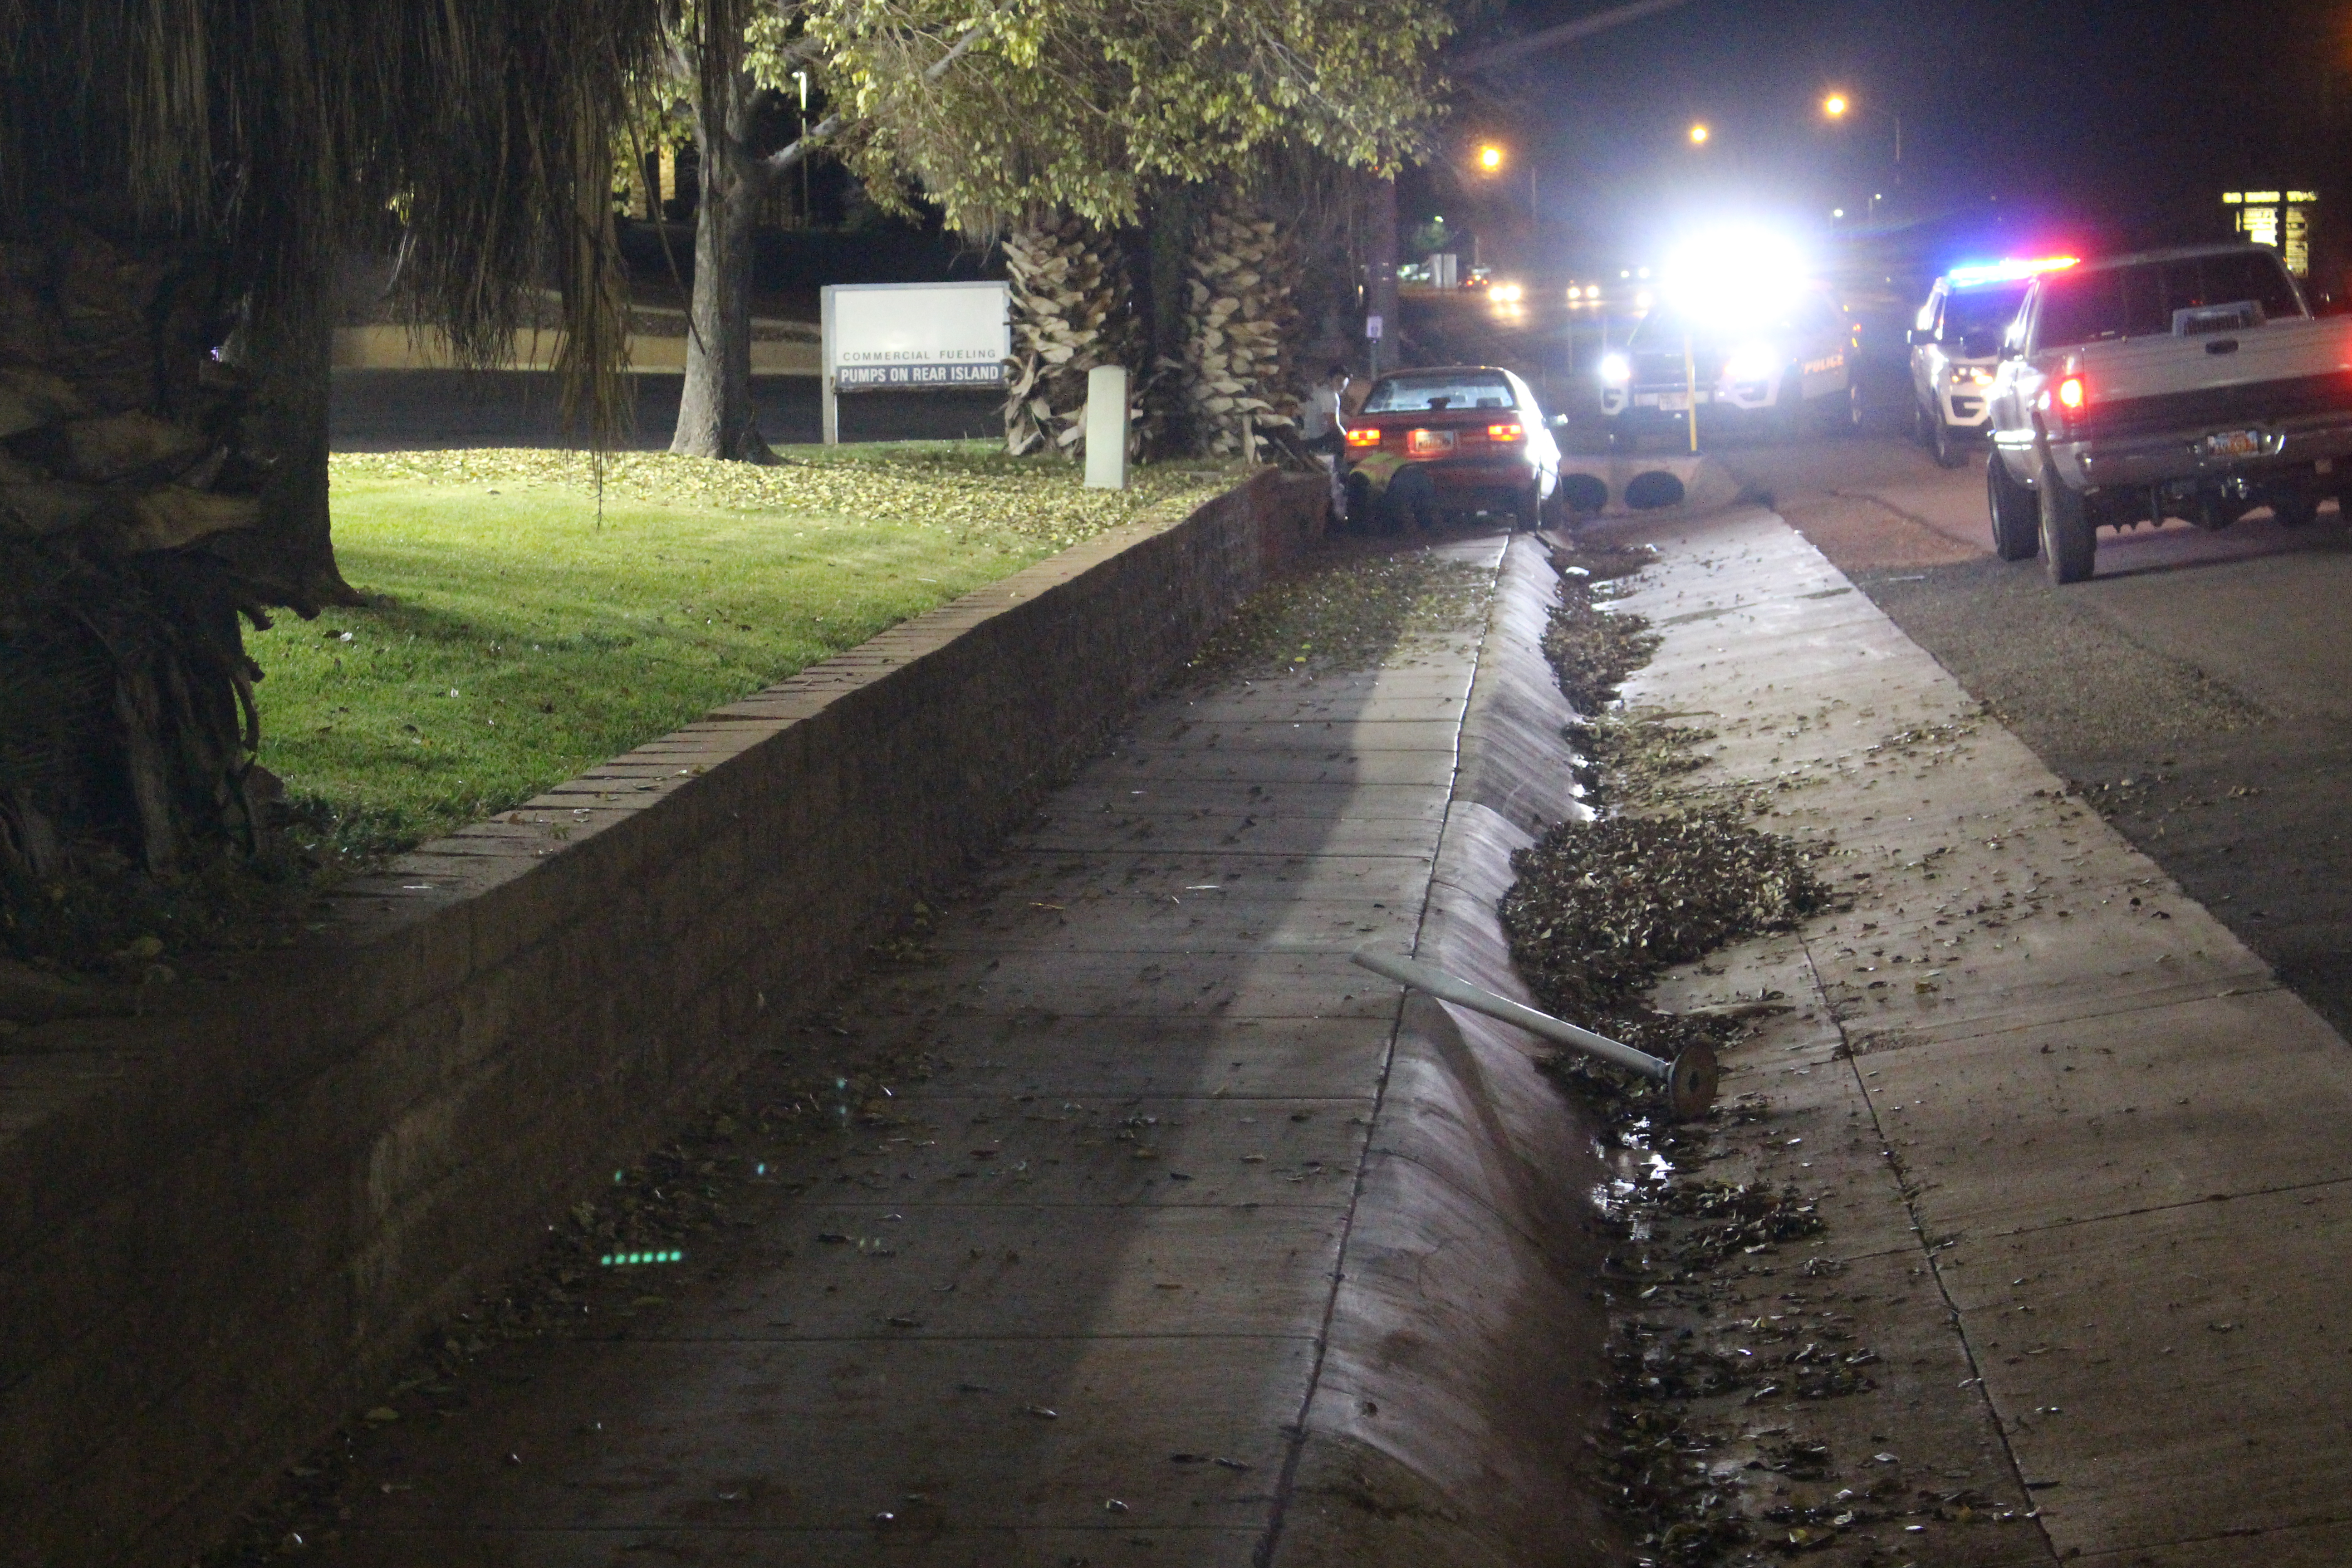 A car sits stuck in a ditch after a mechanical failure caused its driver to drive off the road, St. George, Utah, Dec. 11, 2016   Photo by Joseph Witham, St. George News